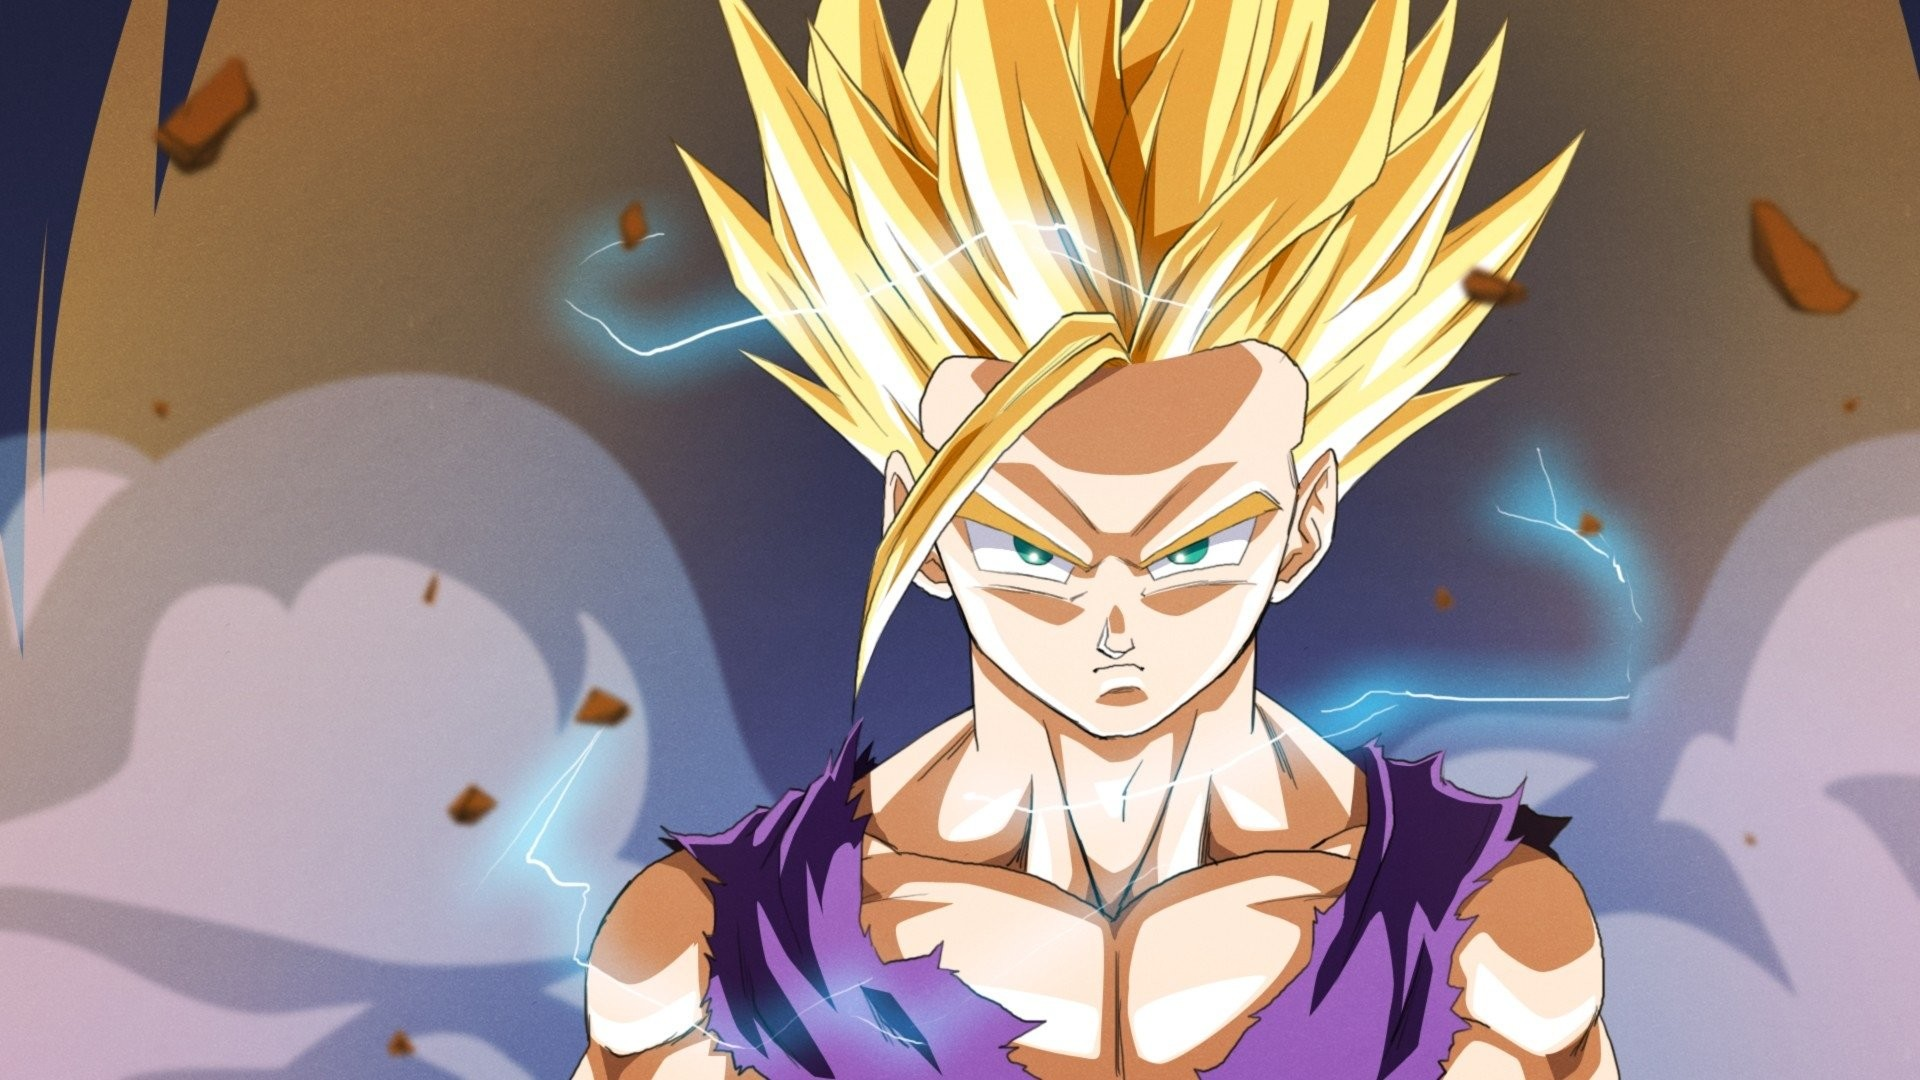 Dragon Ball Z Trunks Wallpaper 66 Images